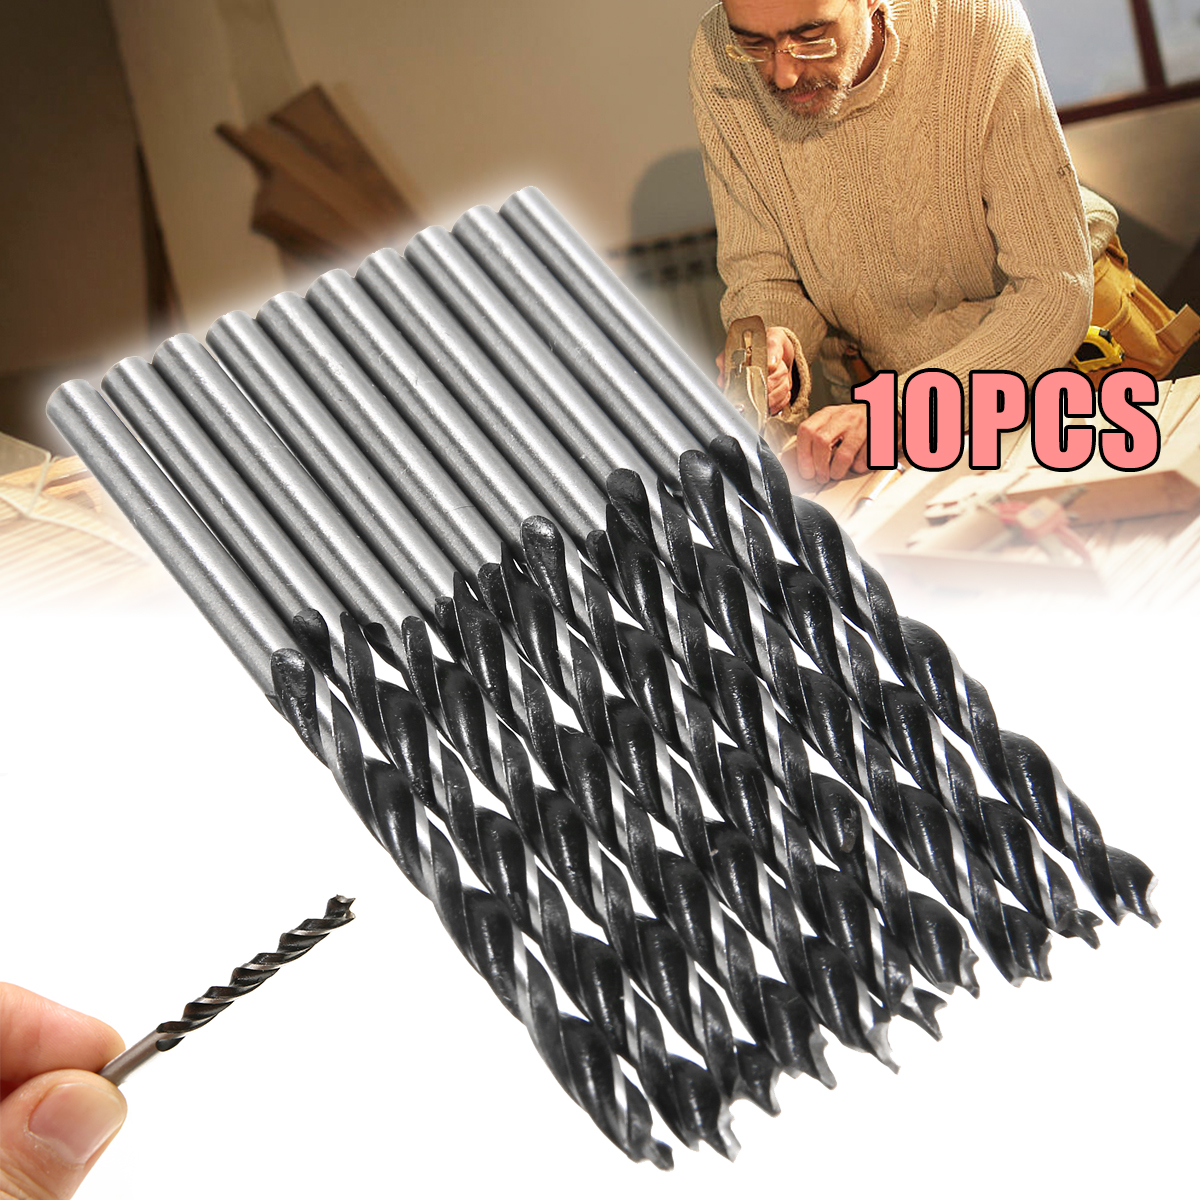 10pcs 4mm Diameter Woodworking Tool 75mm Length Twist Drill Bits High Strength Wood Drills With Center Point